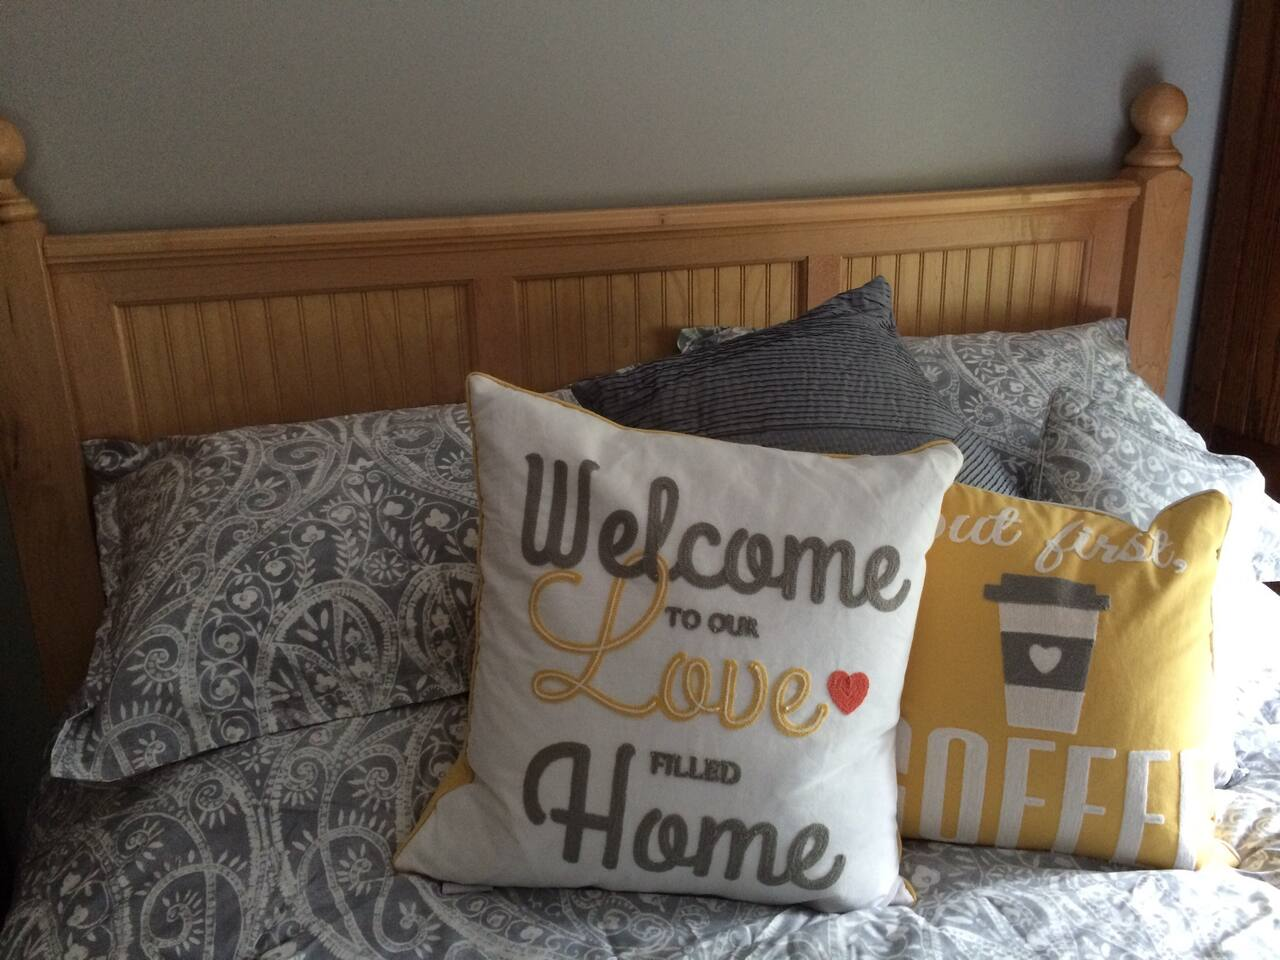 Welcome to our Love Filled Home! Our sentiments exactly.